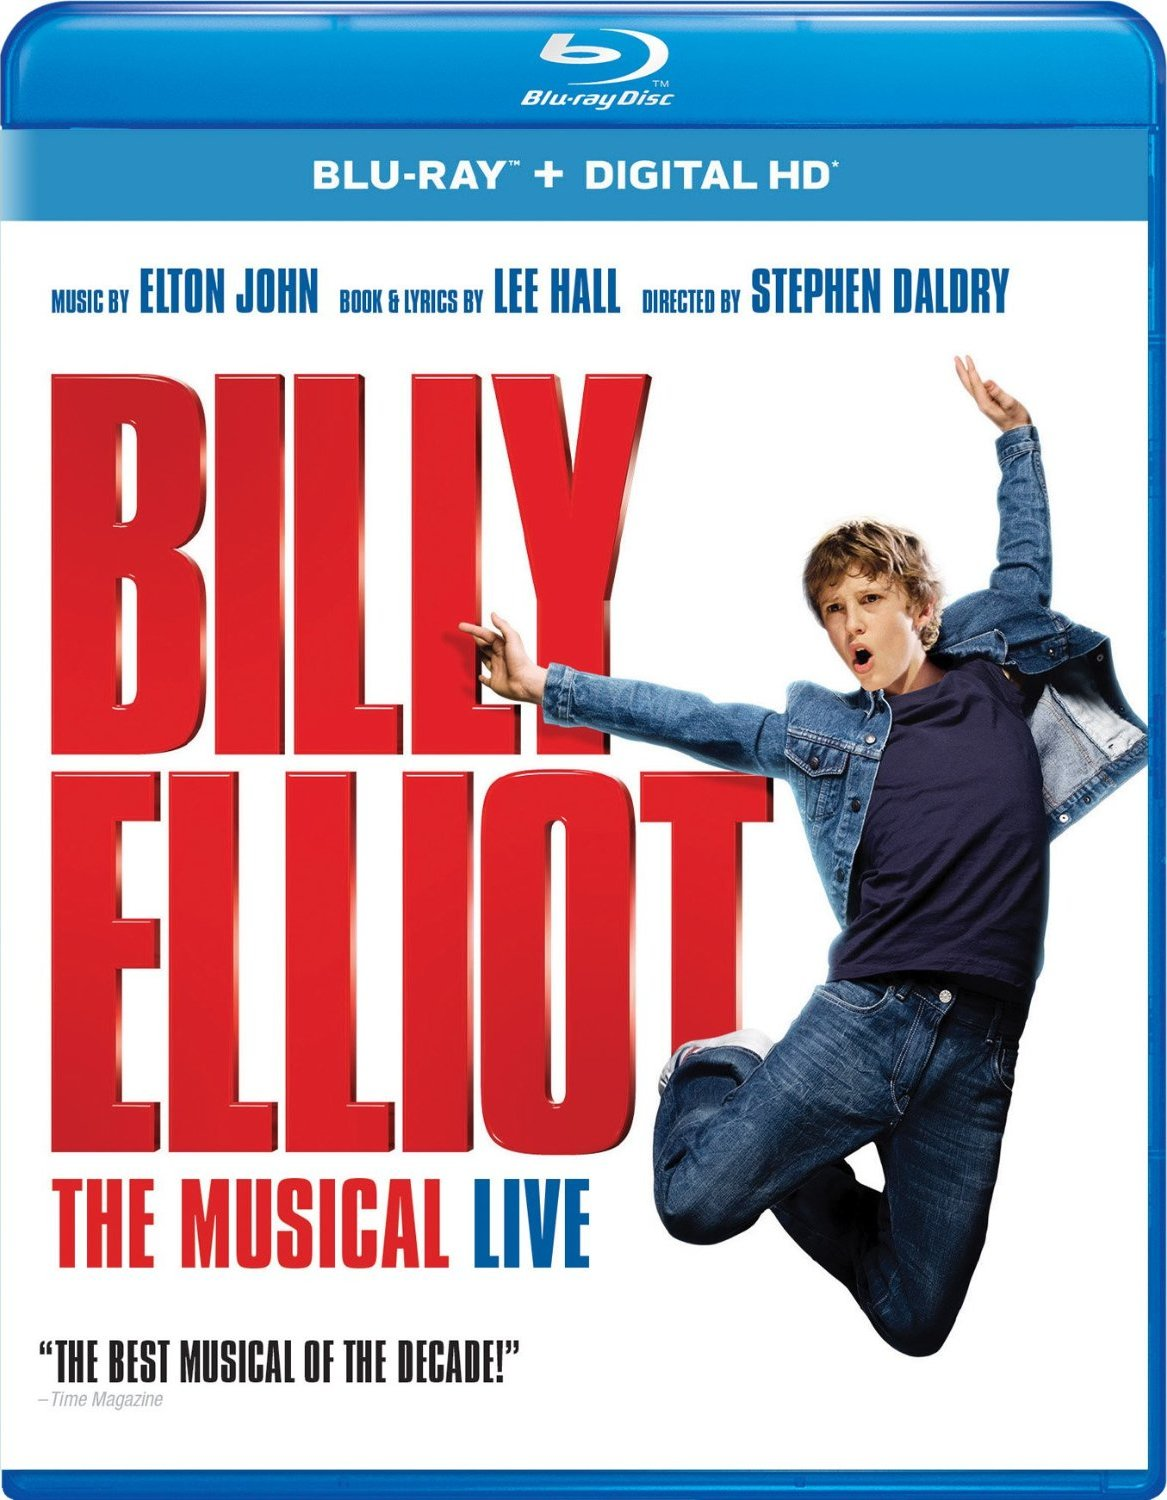 Billy Elliot The Musical Live Blu-ray Review